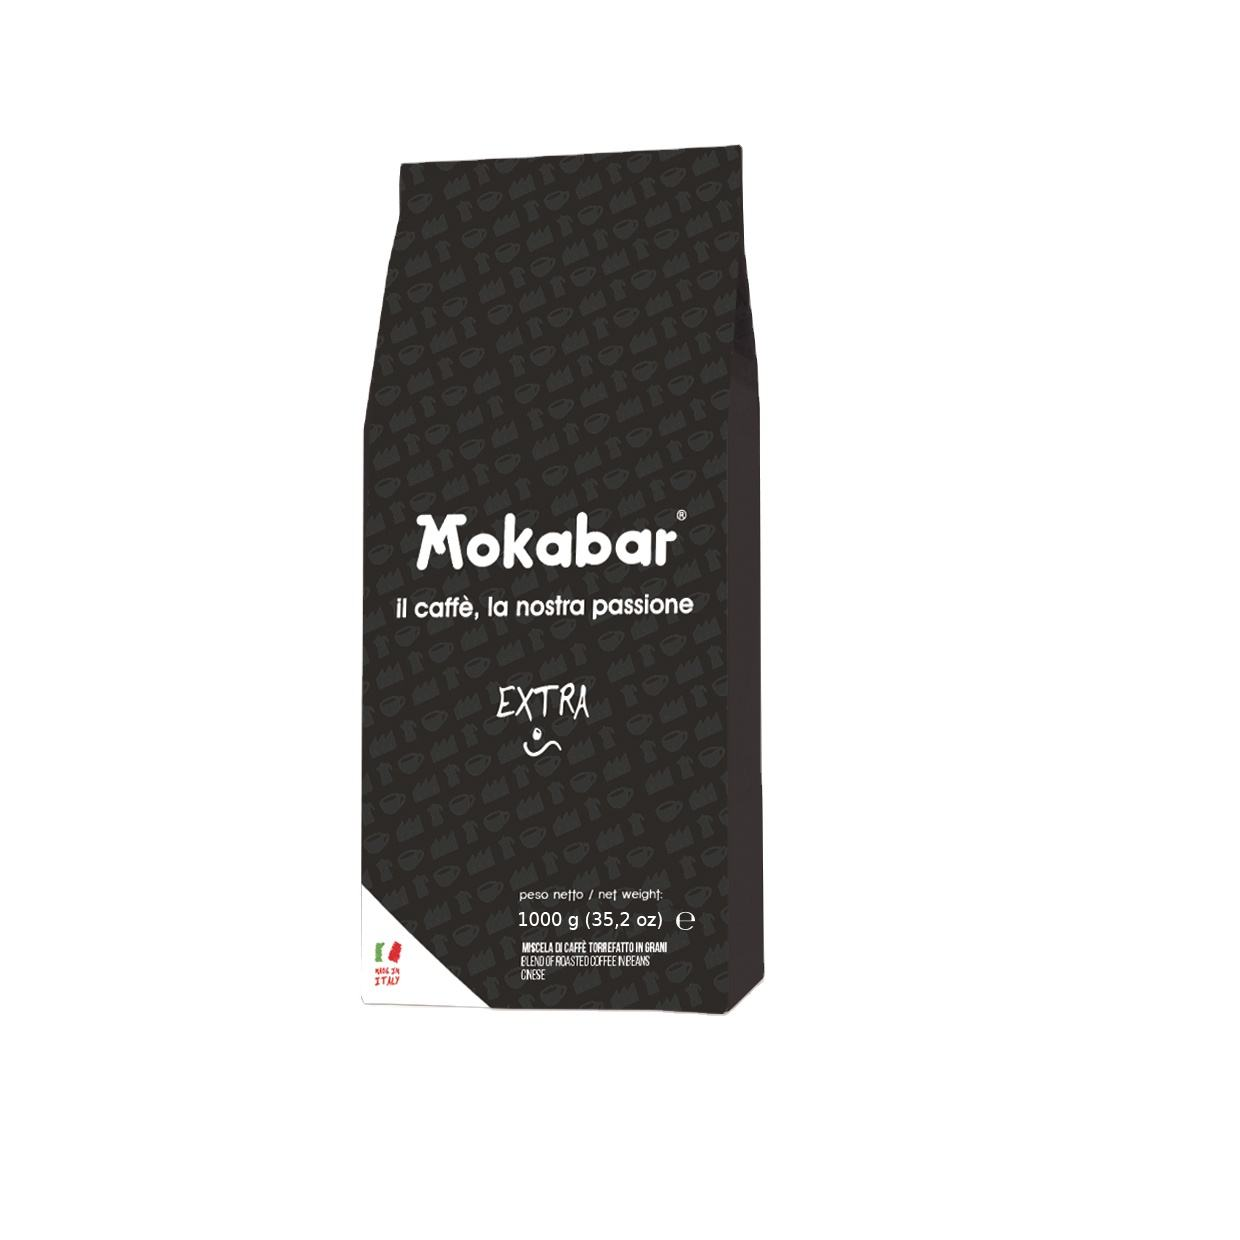 Mokabar - EXTRA coffee 1 kg - 70% Arabica and 30% Robusta coffee beans - Bar Line - Brazilian coffee beans